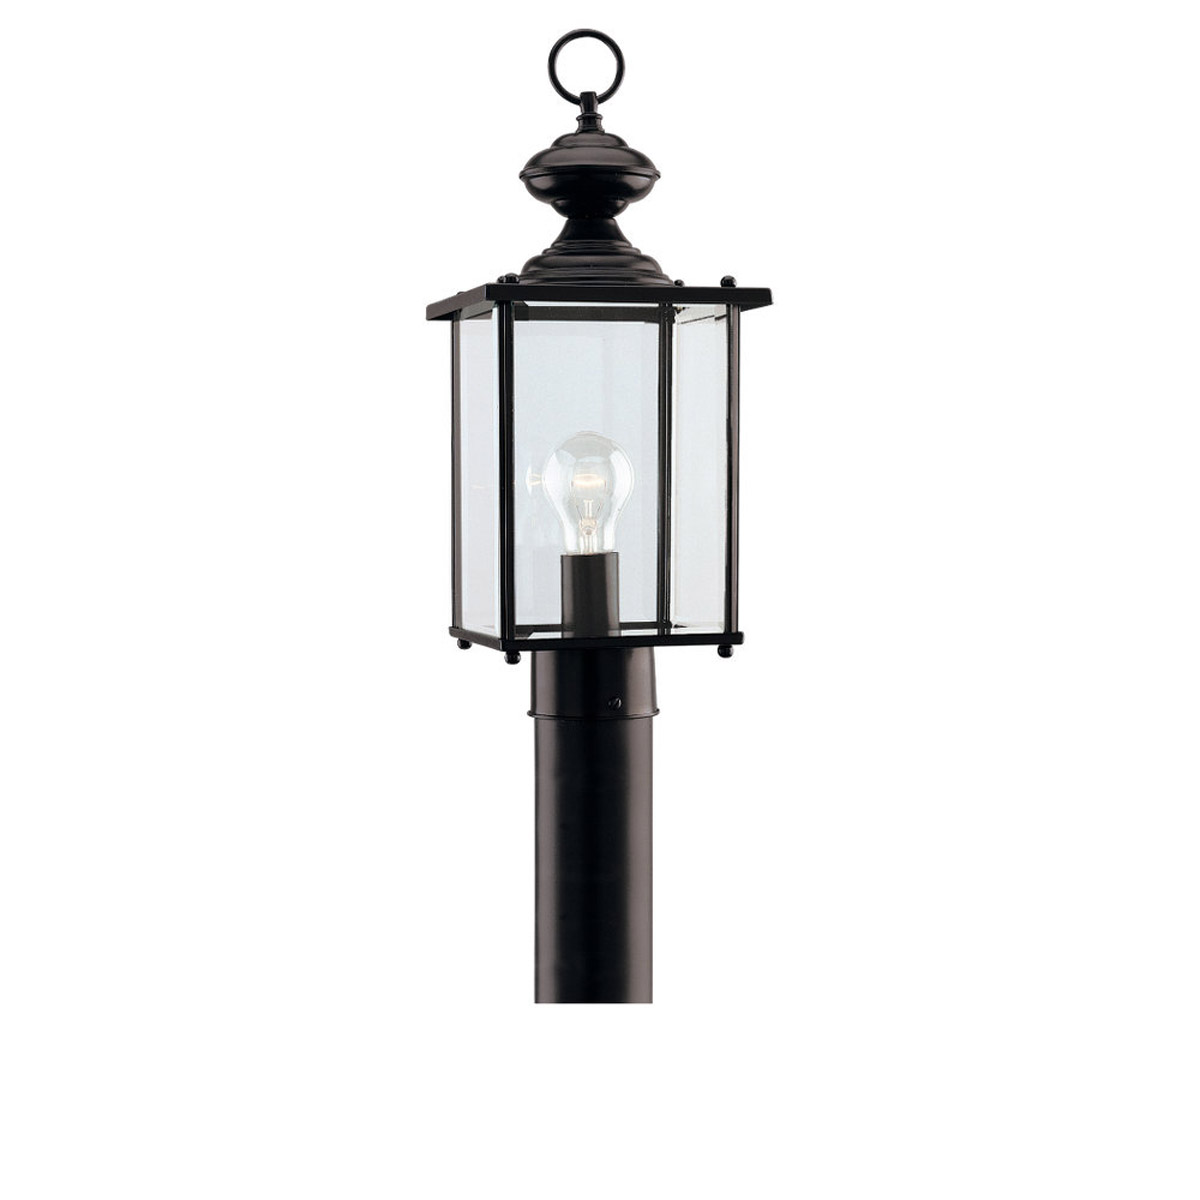 Sea Gull Lighting Jamestowne 1 Light Outdoor Post Lantern in Black 8257-12 photo